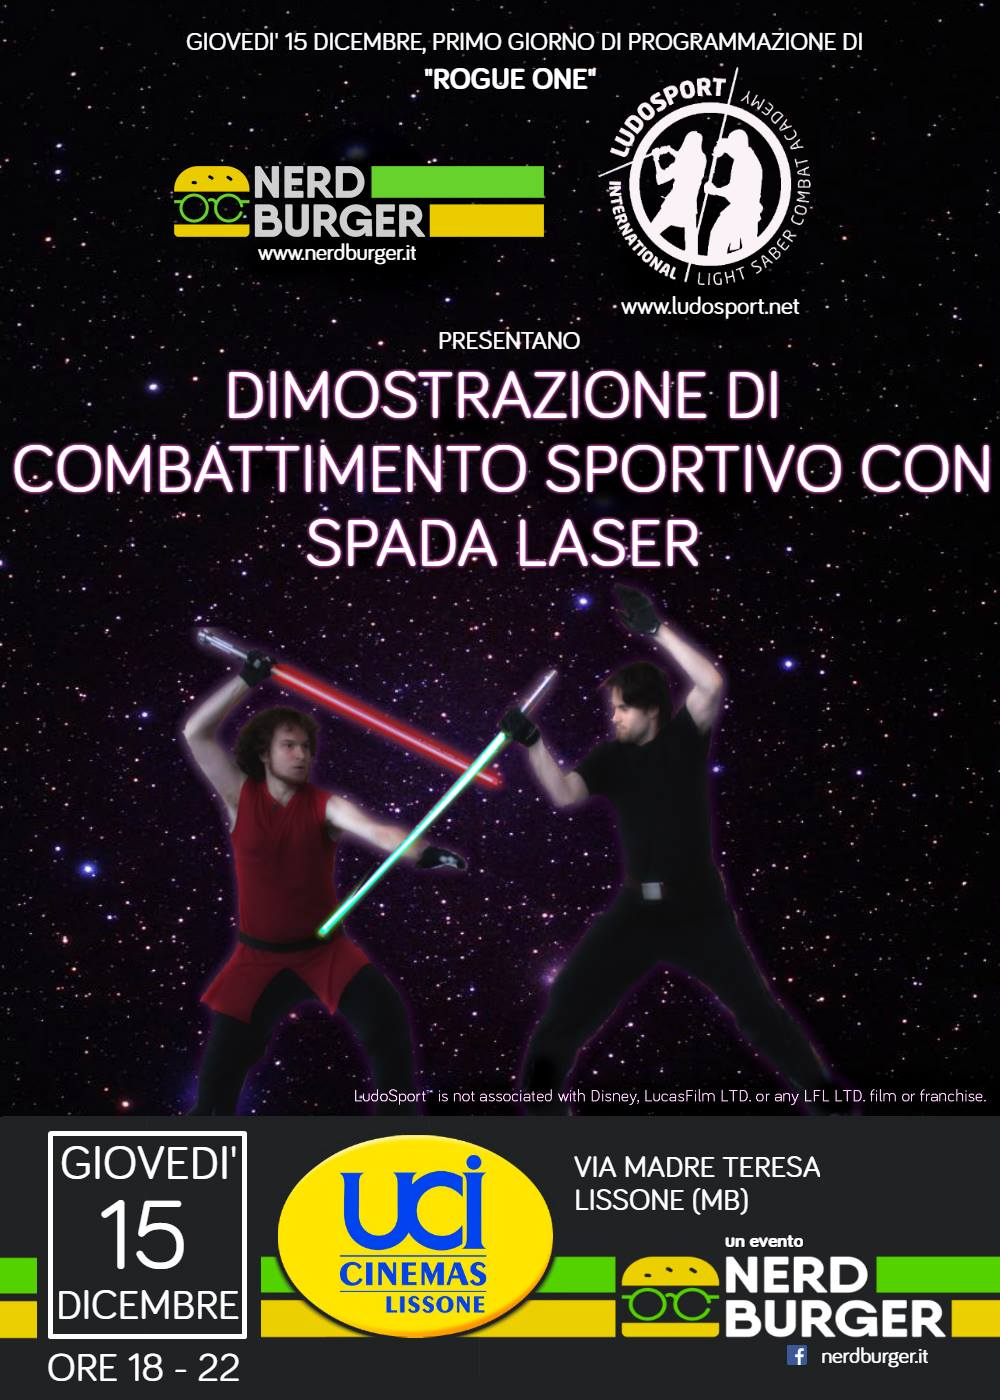 Rogue One UCI Lissone